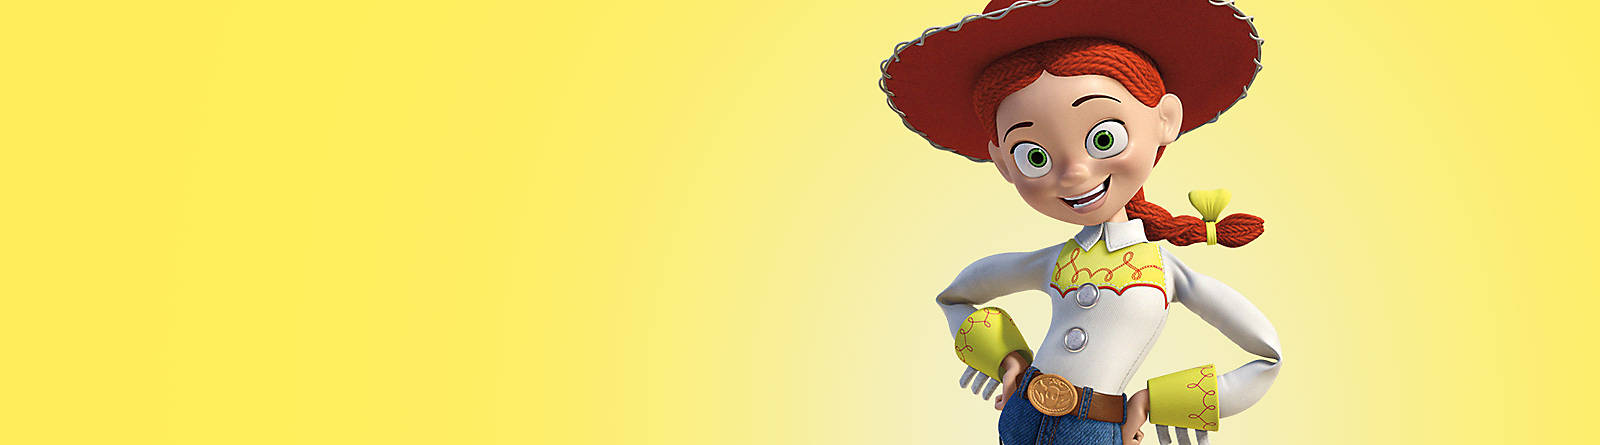 Jessie Yee-haw! Discover our range of Jessie from Toy Story including toys, collectibles, figurines and more